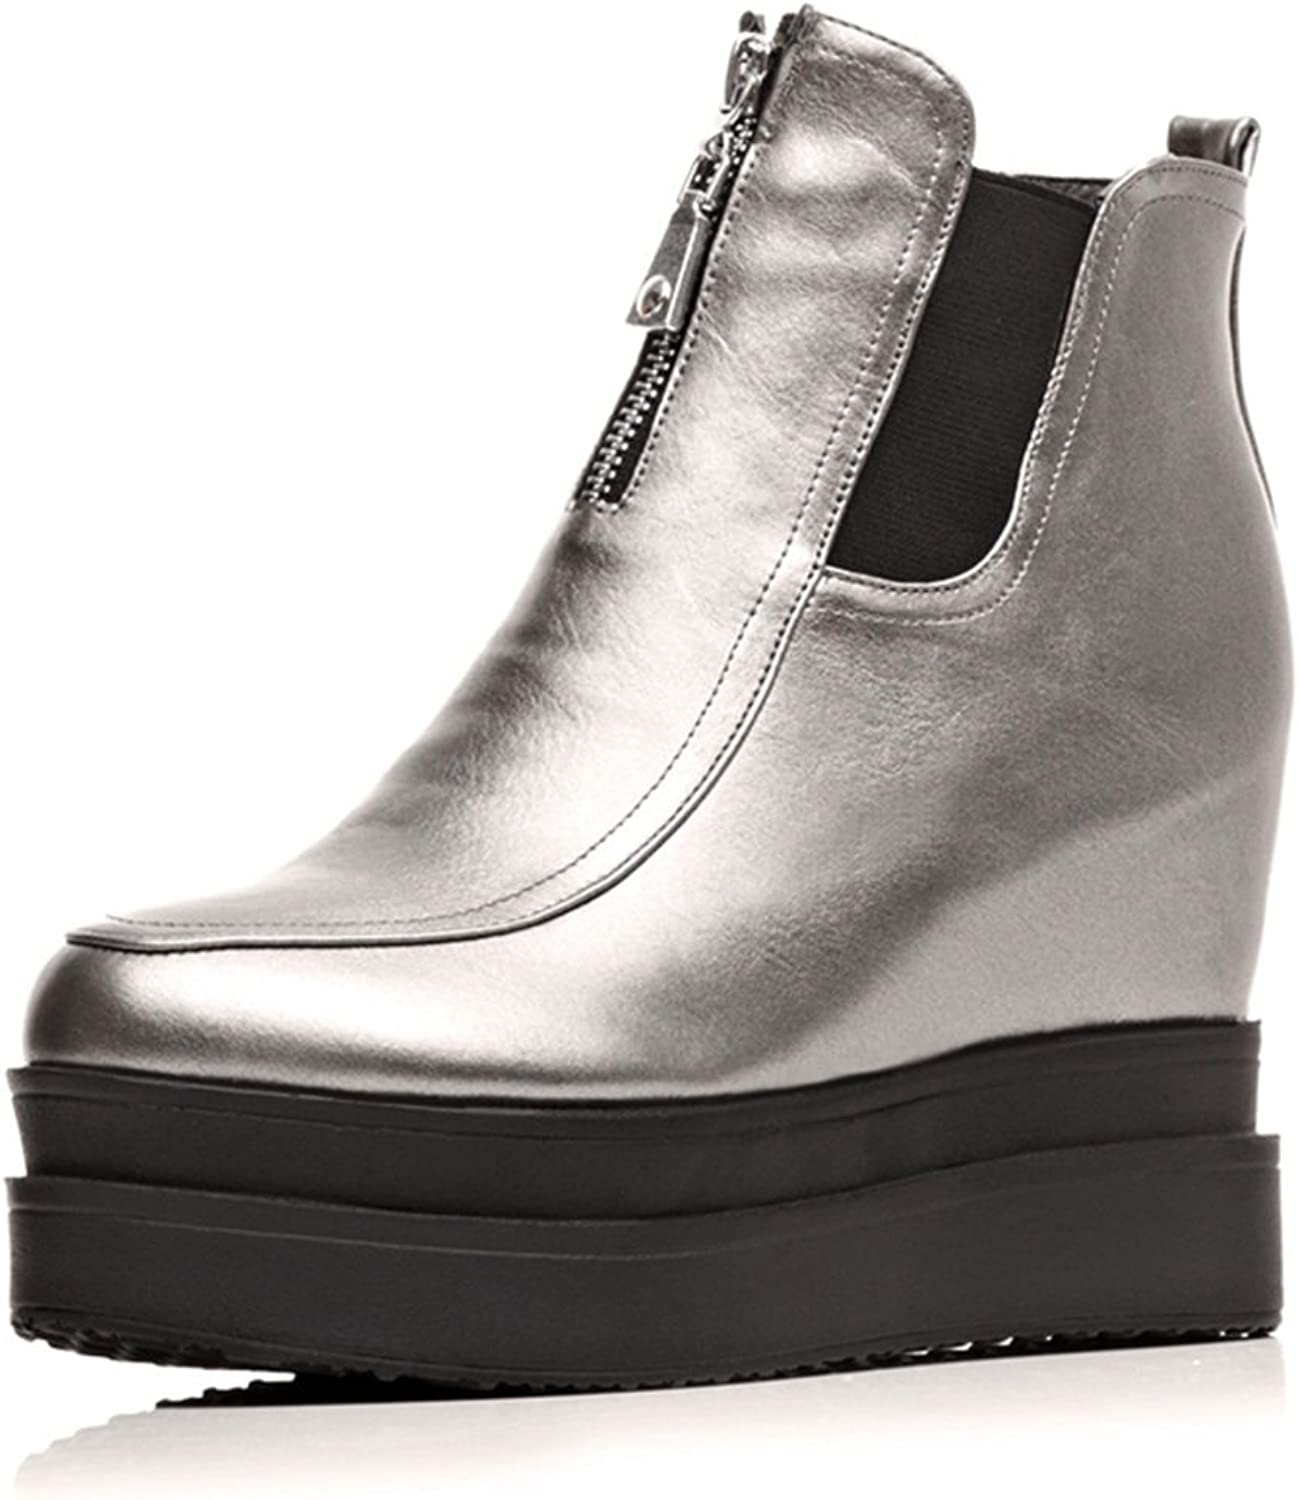 RHFDVGDS Fall winter Ji Song Patty high boots at the end of Martin boots